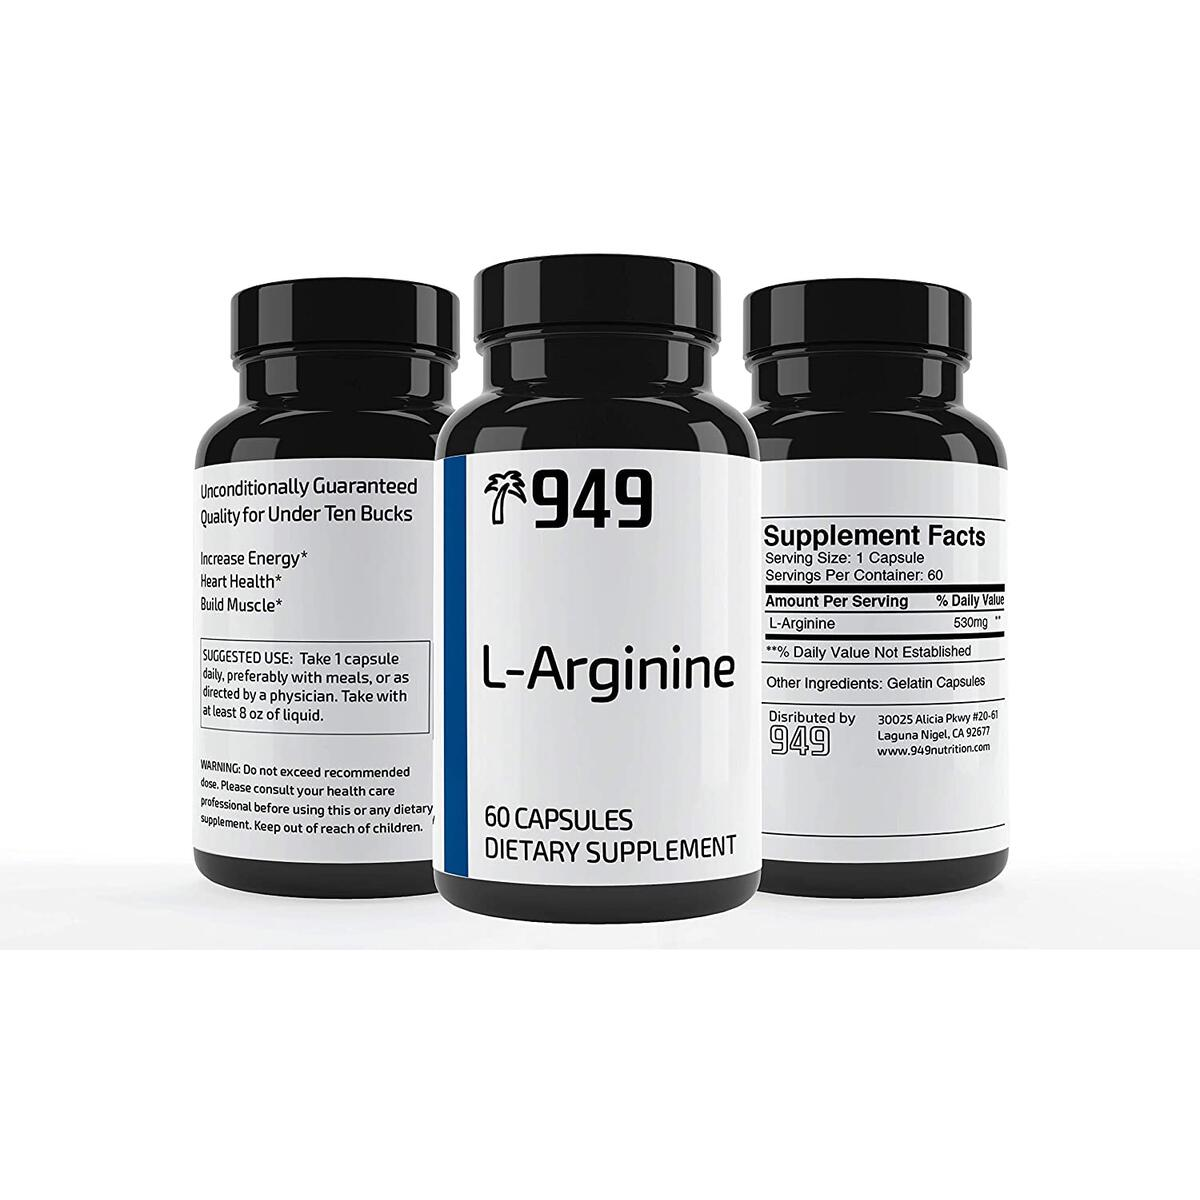 L-Arginine Capsules, Under 10 Dollars, 60 Capsules, Supplement for Muscle Growth, Pump Vascularity and Energy*, Pure with No Additives or Fillers, Made in USA, Satisfaction Guaranteed, 949